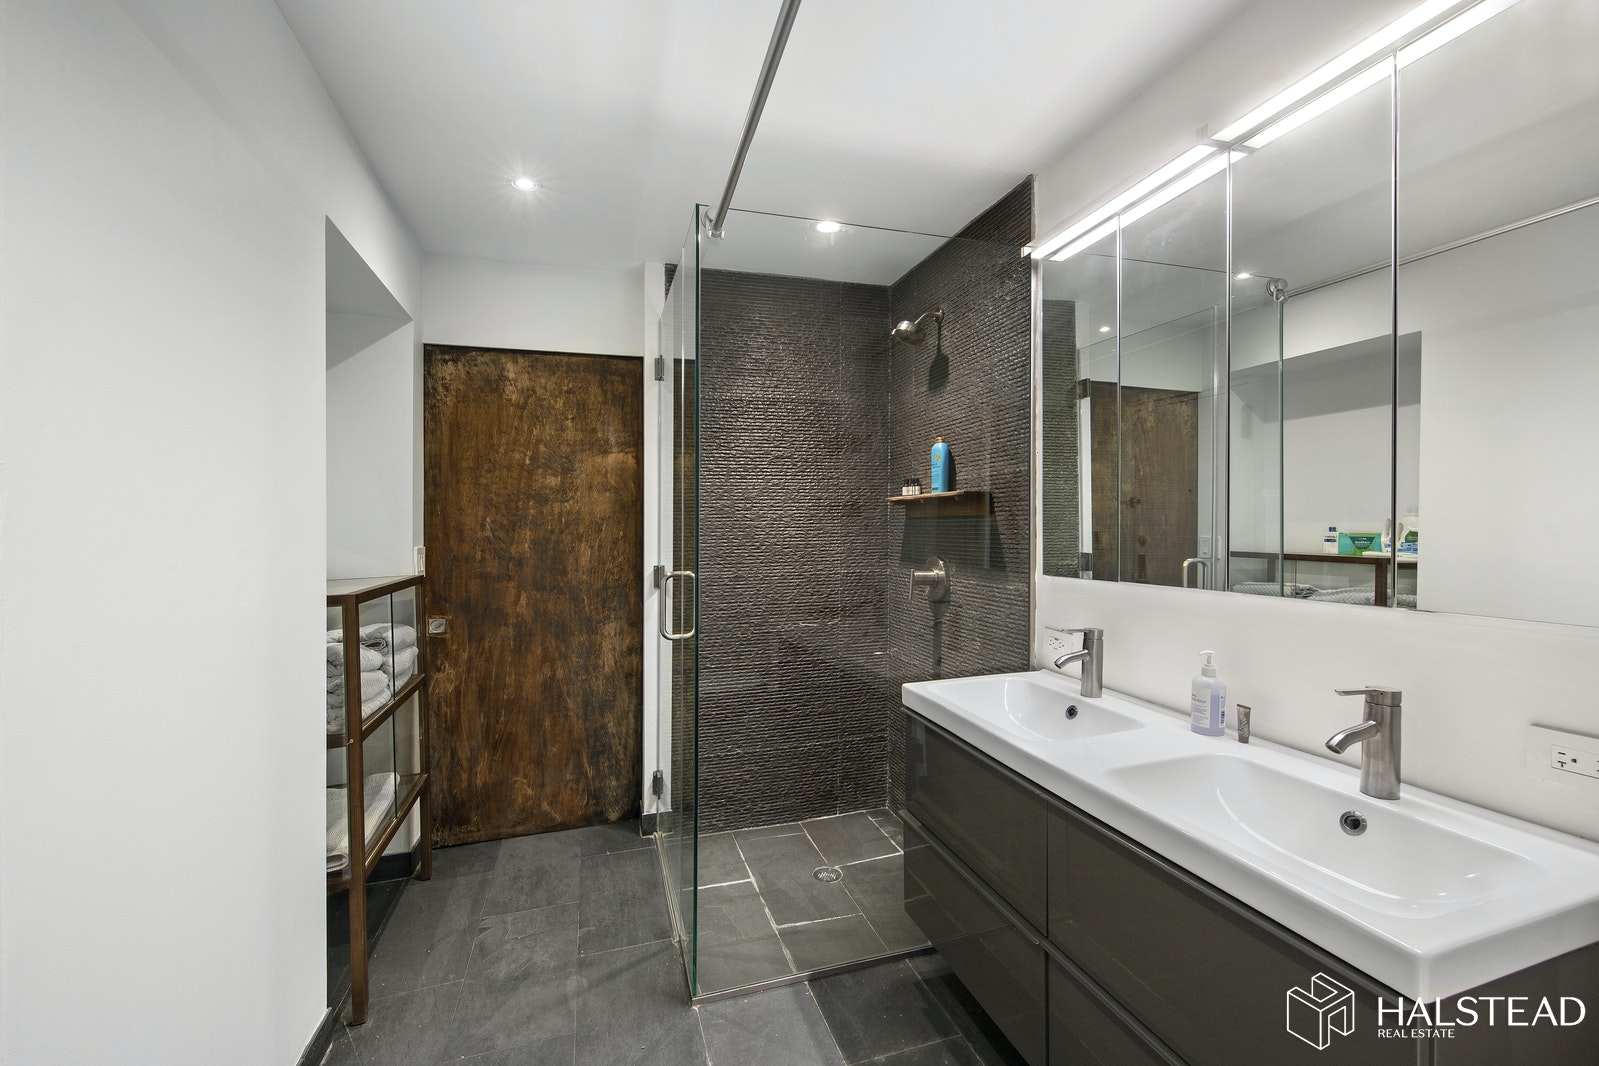 125 WEST 56TH STREET 1A/2A, Midtown West, $1,395,000, Web #: 20140642